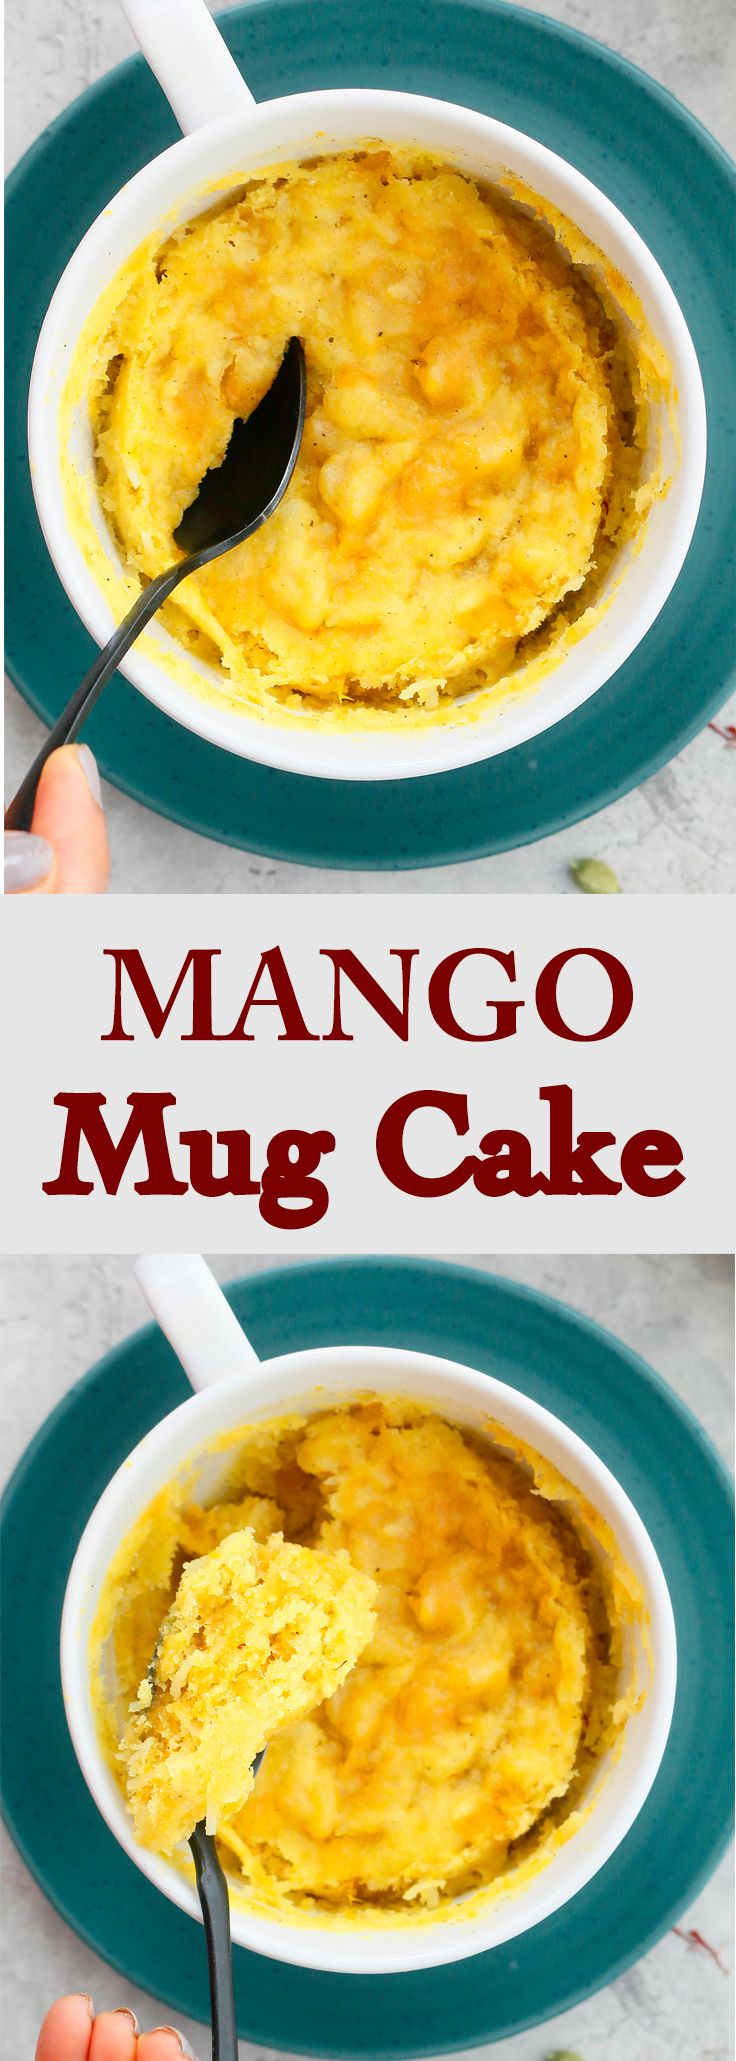 This Mango Mug Cake recipe uses a CLEVER techique in concentraing mango flavor without additional steps, so it can be lo…